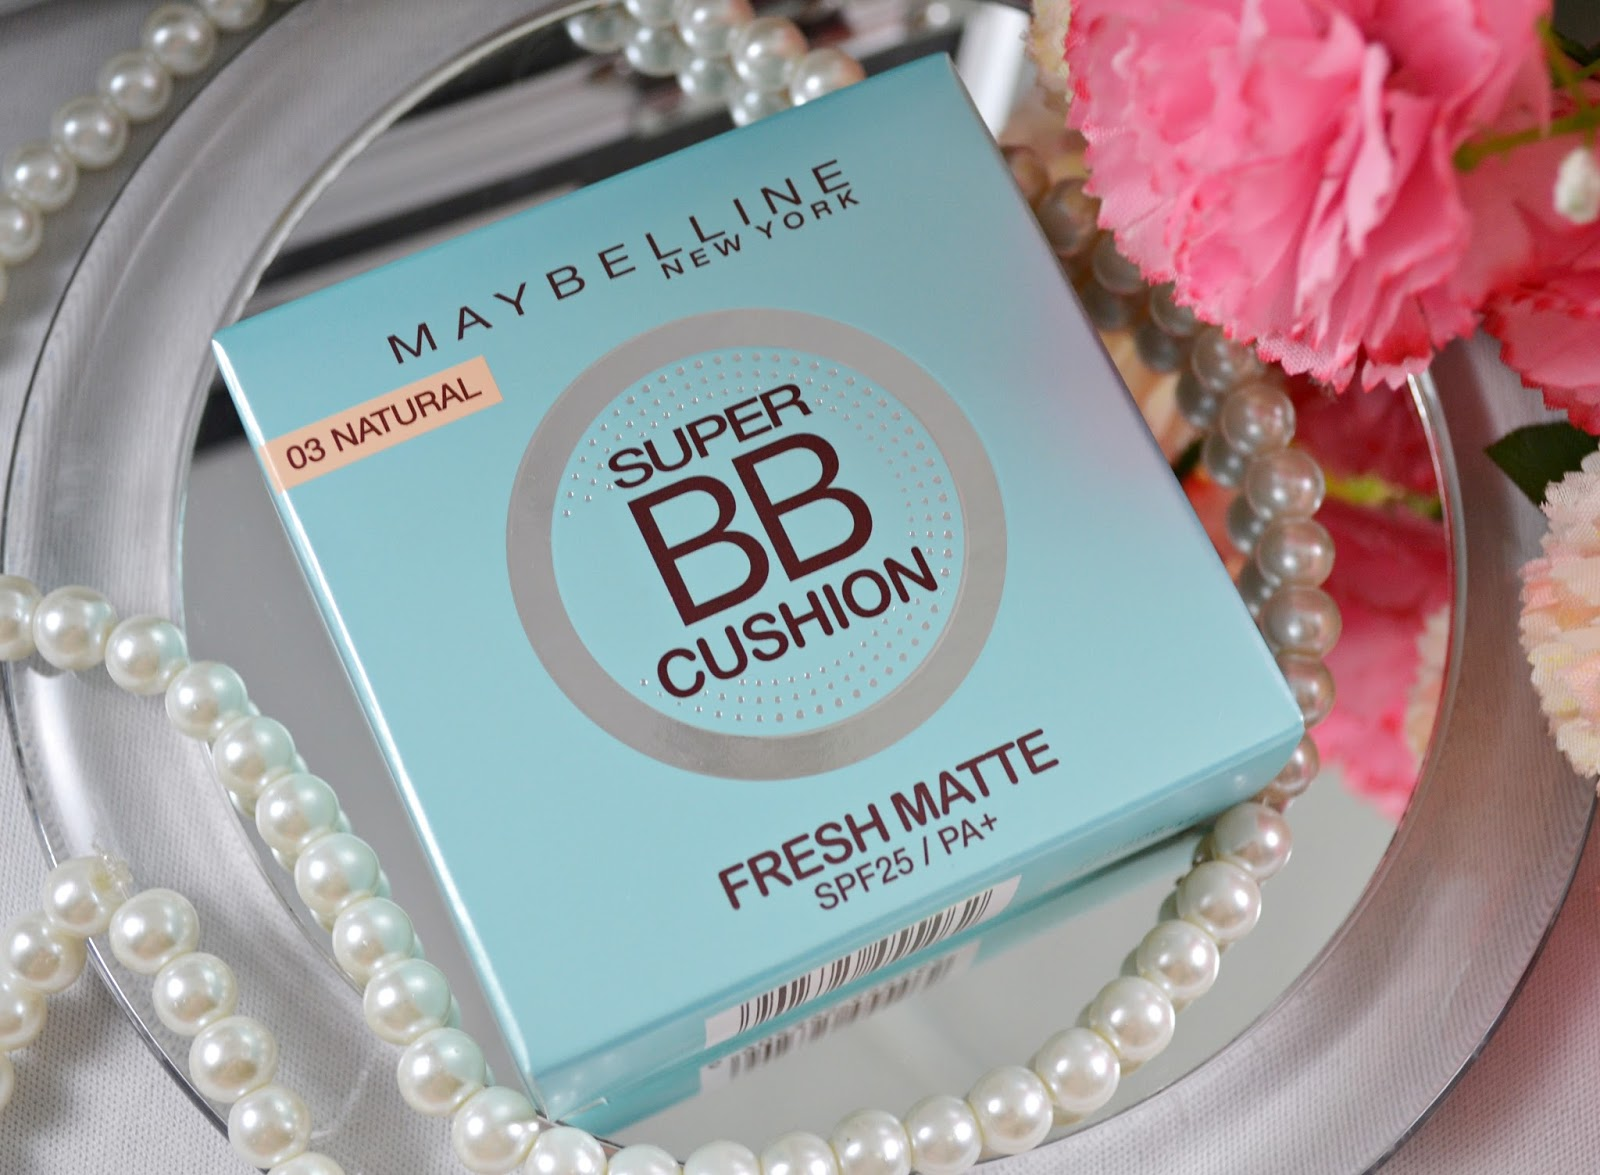 review phan nuoc cho da dau maybeline super bb cushion fresh matte spf25 hinh anh 2